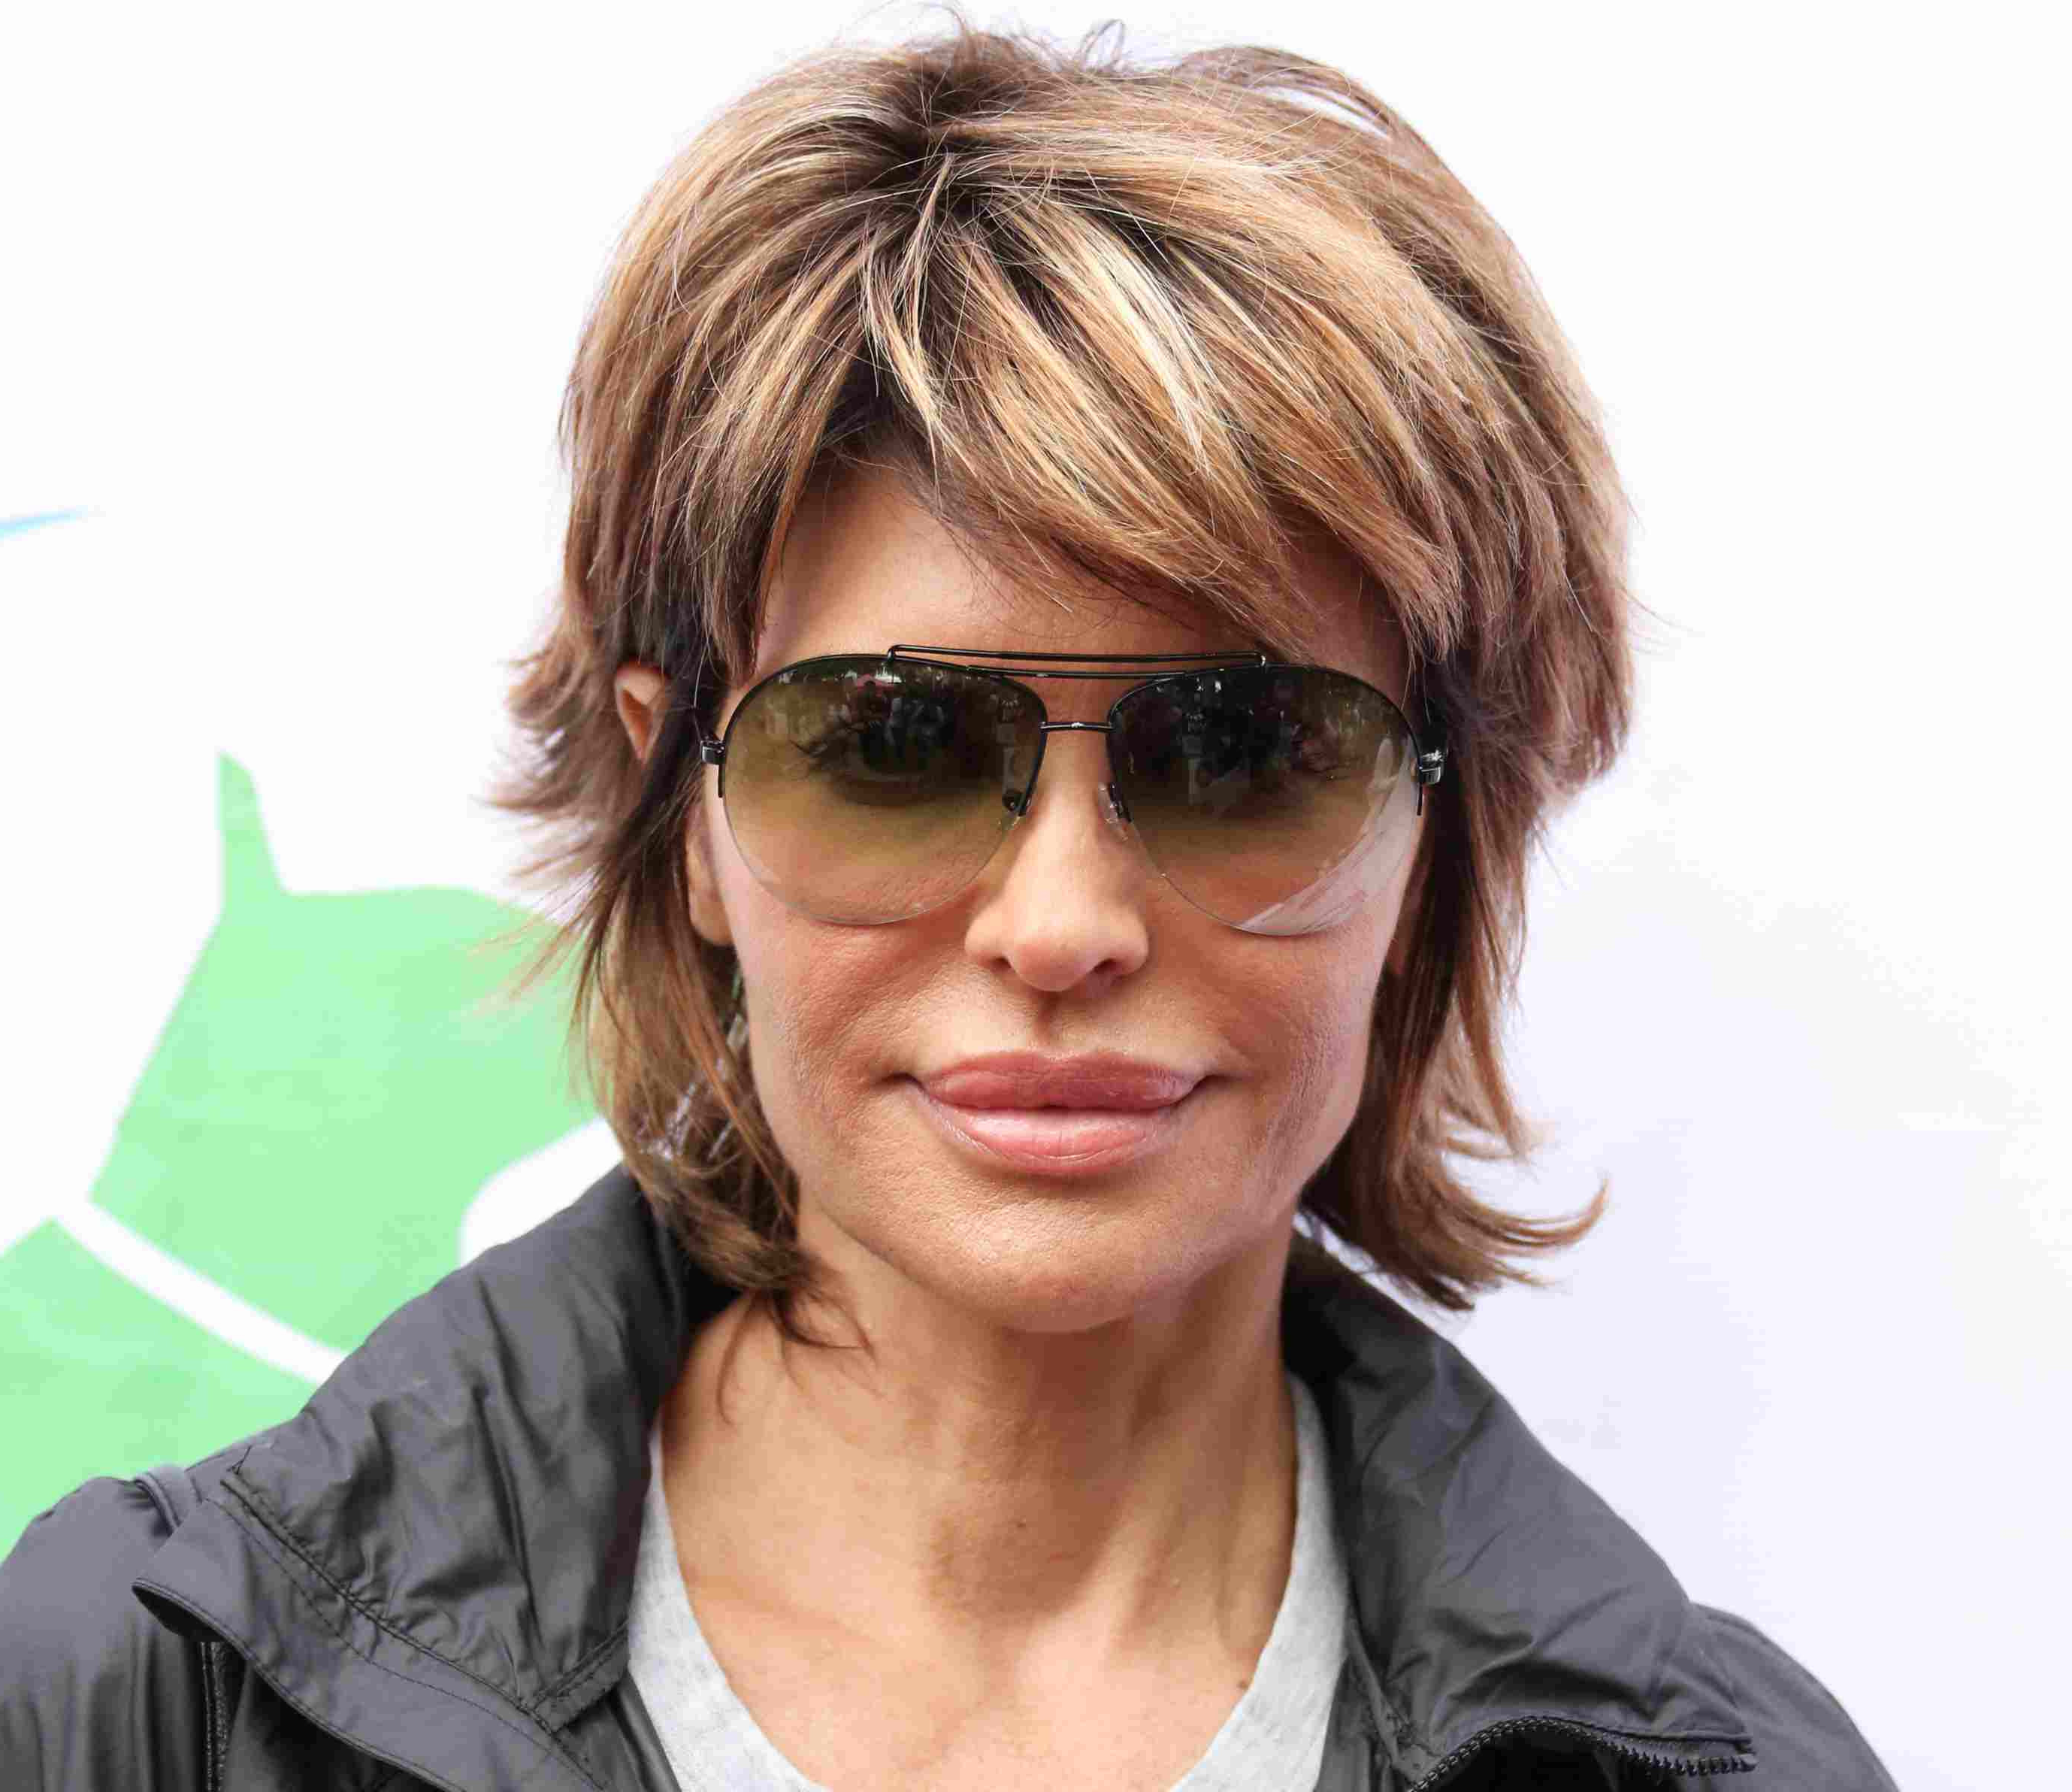 Short Hairstyles For Thin Hair And Glasses Best Of 34 Gorgeous Short Pertaining To Short Haircuts For People With Glasses (View 15 of 25)